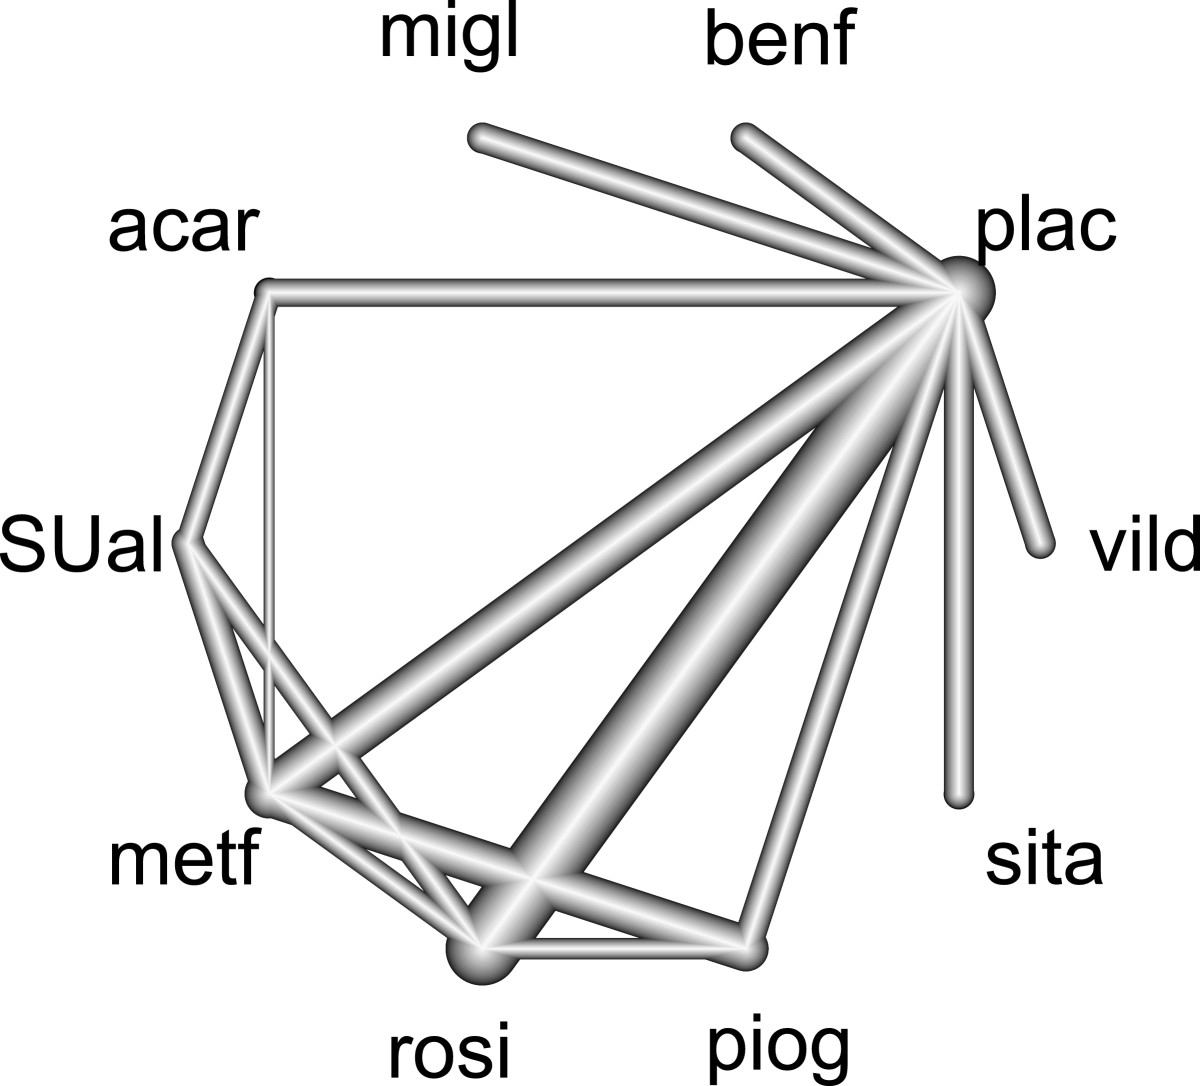 https://static-content.springer.com/image/art%3A10.1186%2F1471-2288-13-35/MediaObjects/12874_2012_Article_934_Fig4_HTML.jpg